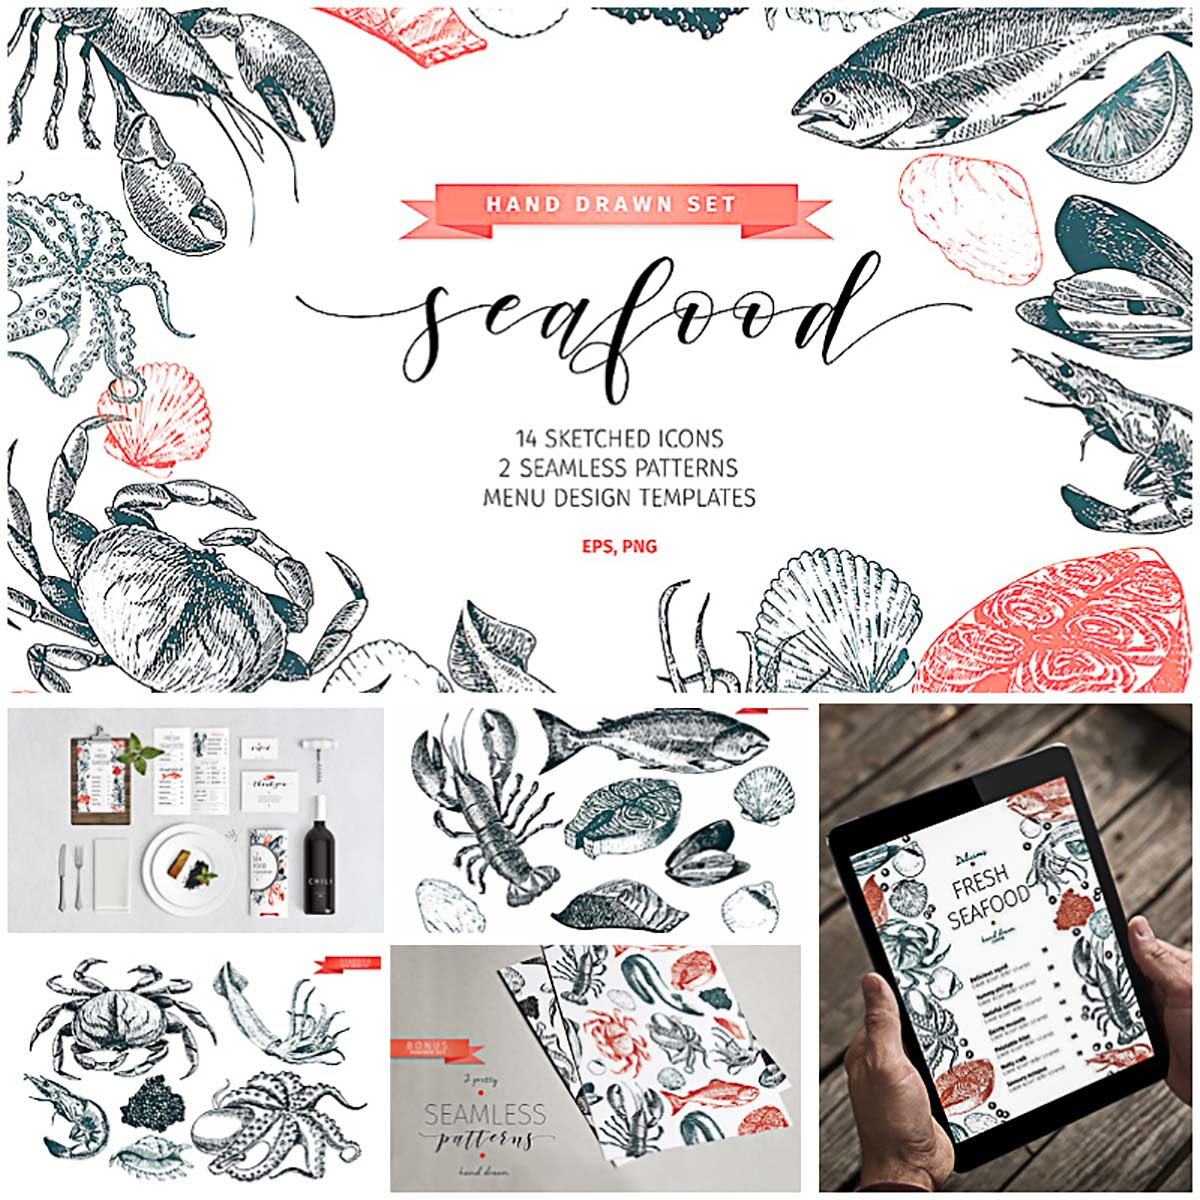 Seafood illustrations set